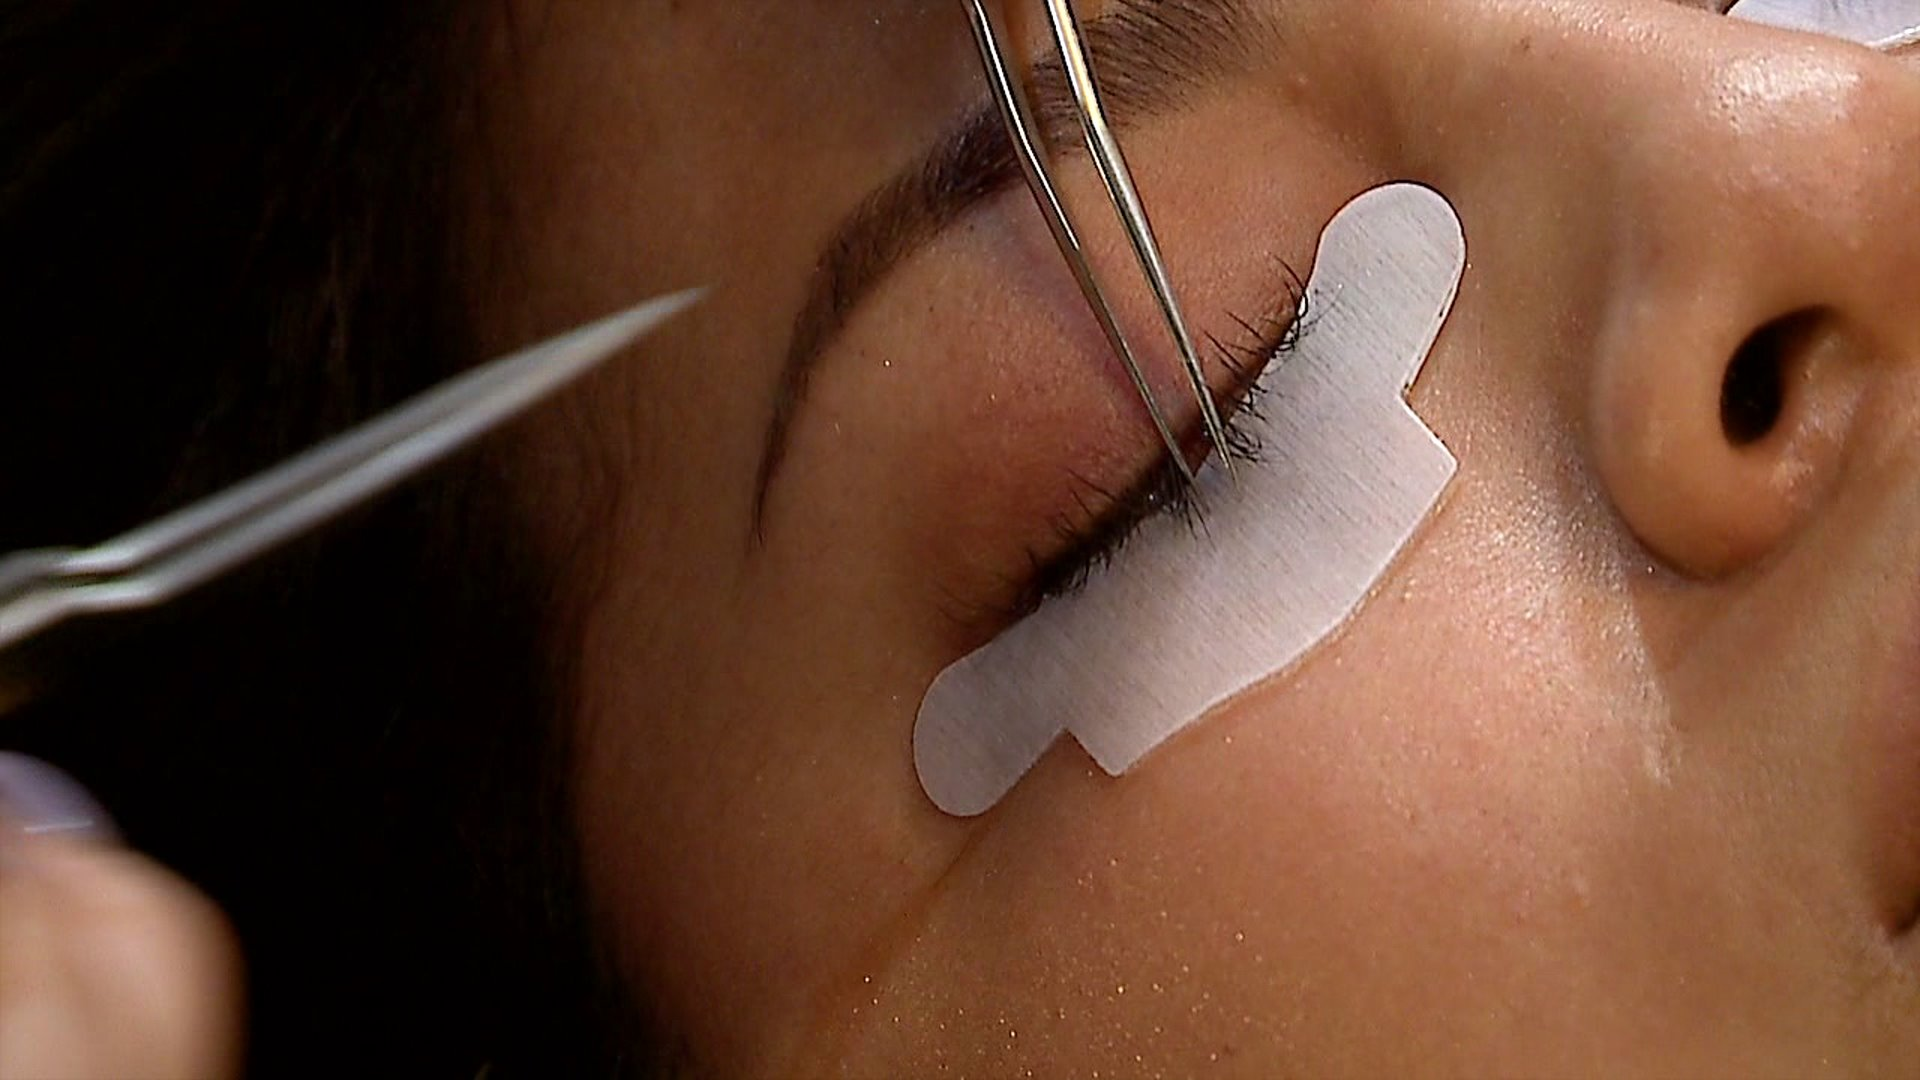 Eyelash Extensions Lead to Cosmetic Nightmare